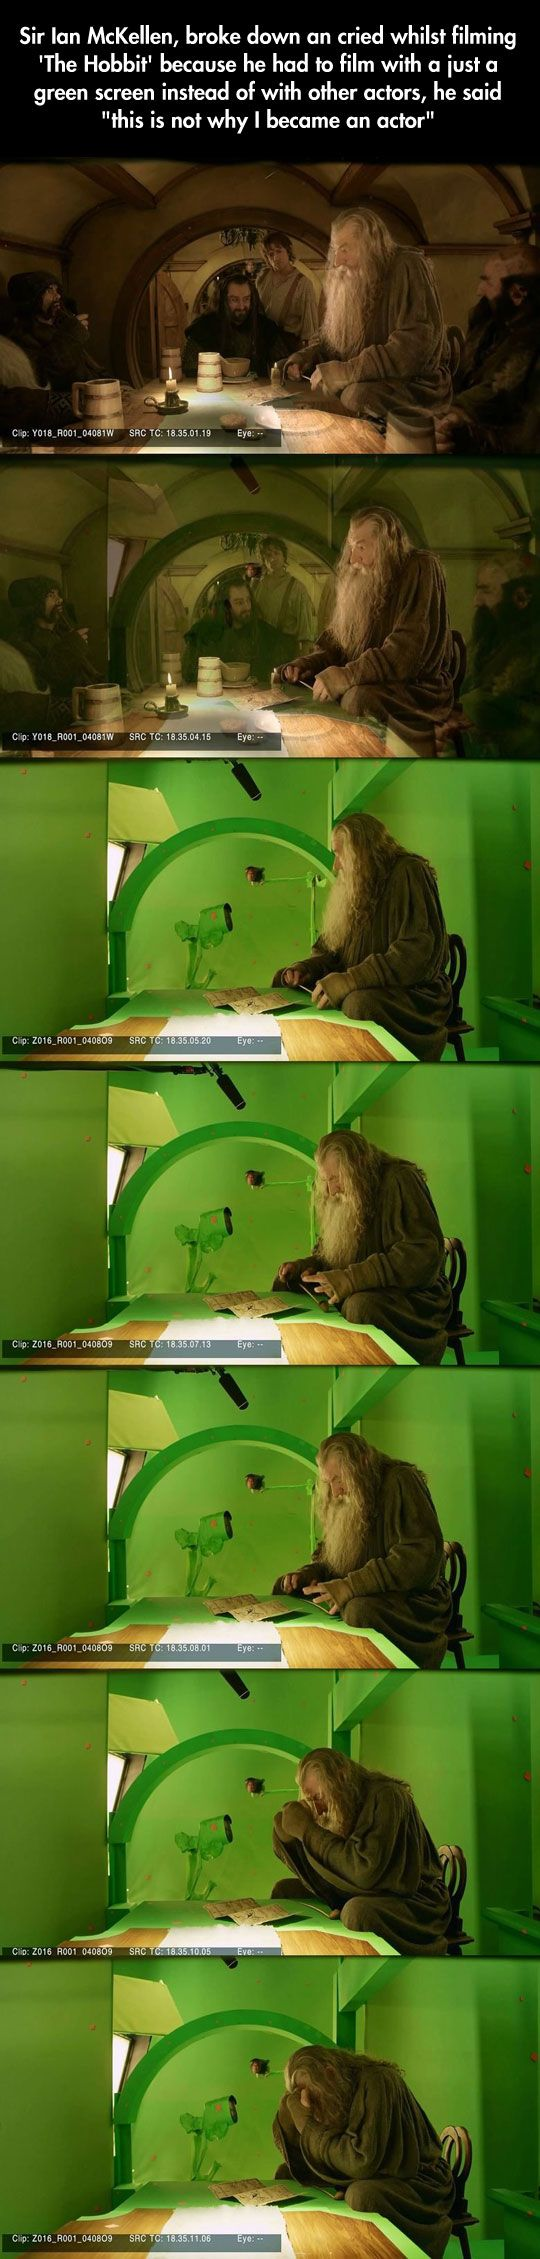 This is not why I became an actor. This is the opposite of his normal stage acting. And they didn't use any green screen like this in the LotR.